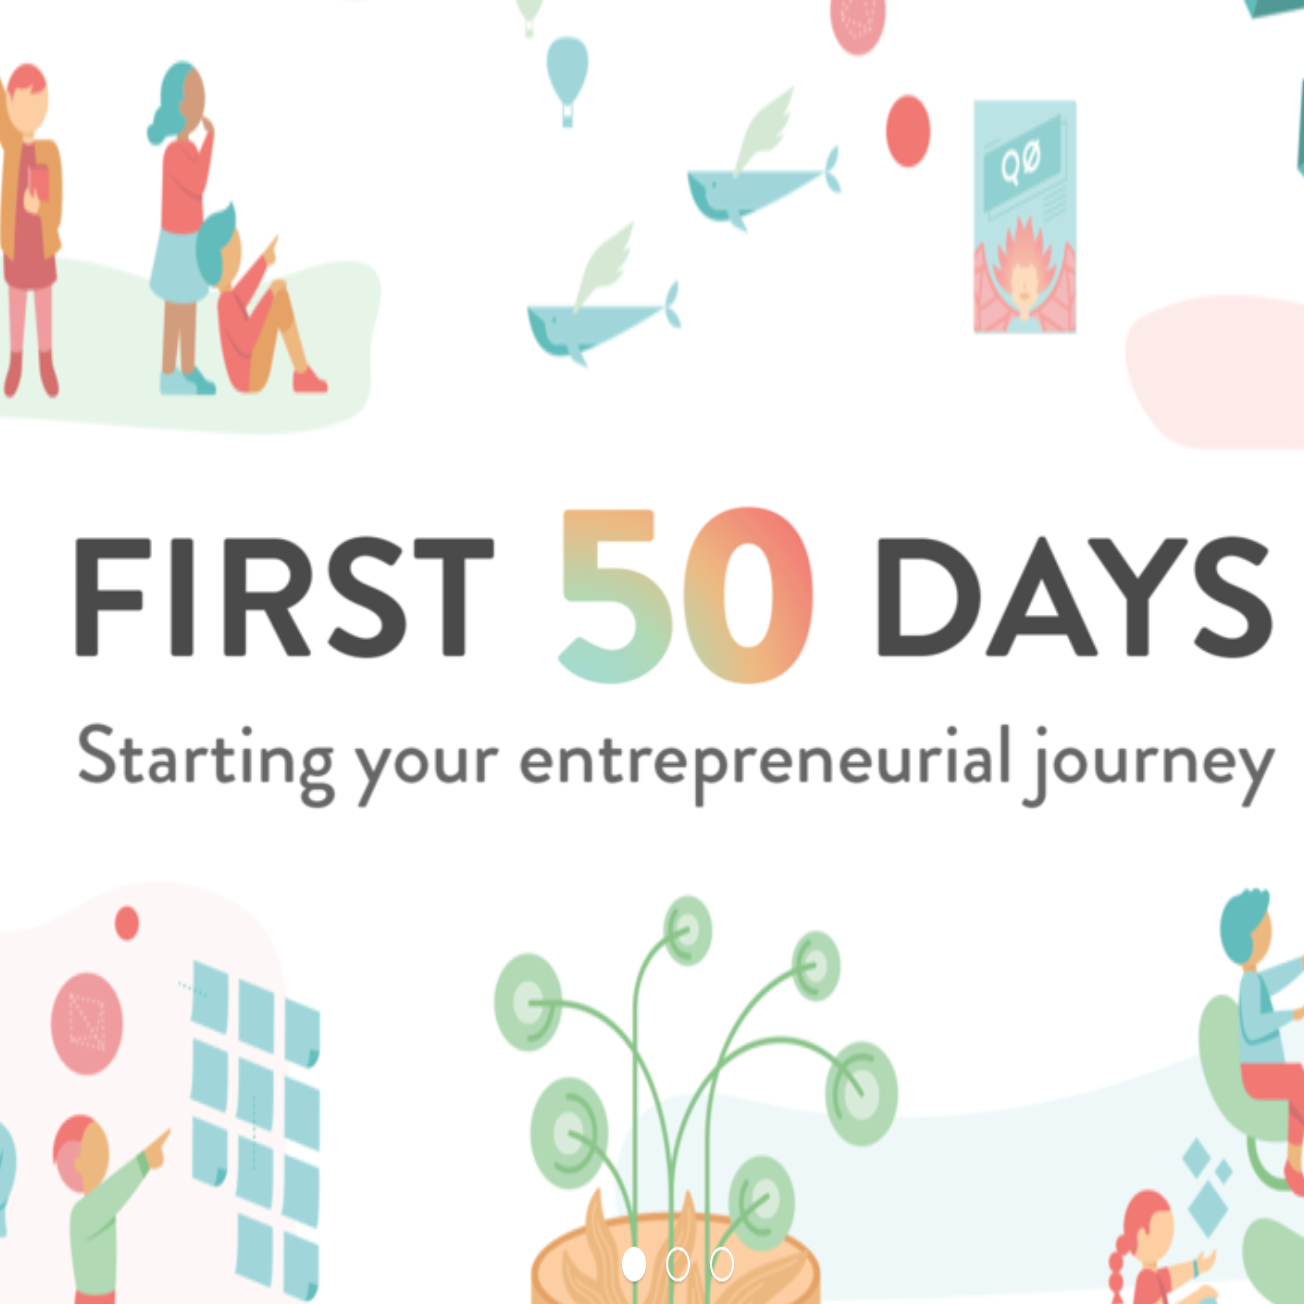 50 Day Startup Guide